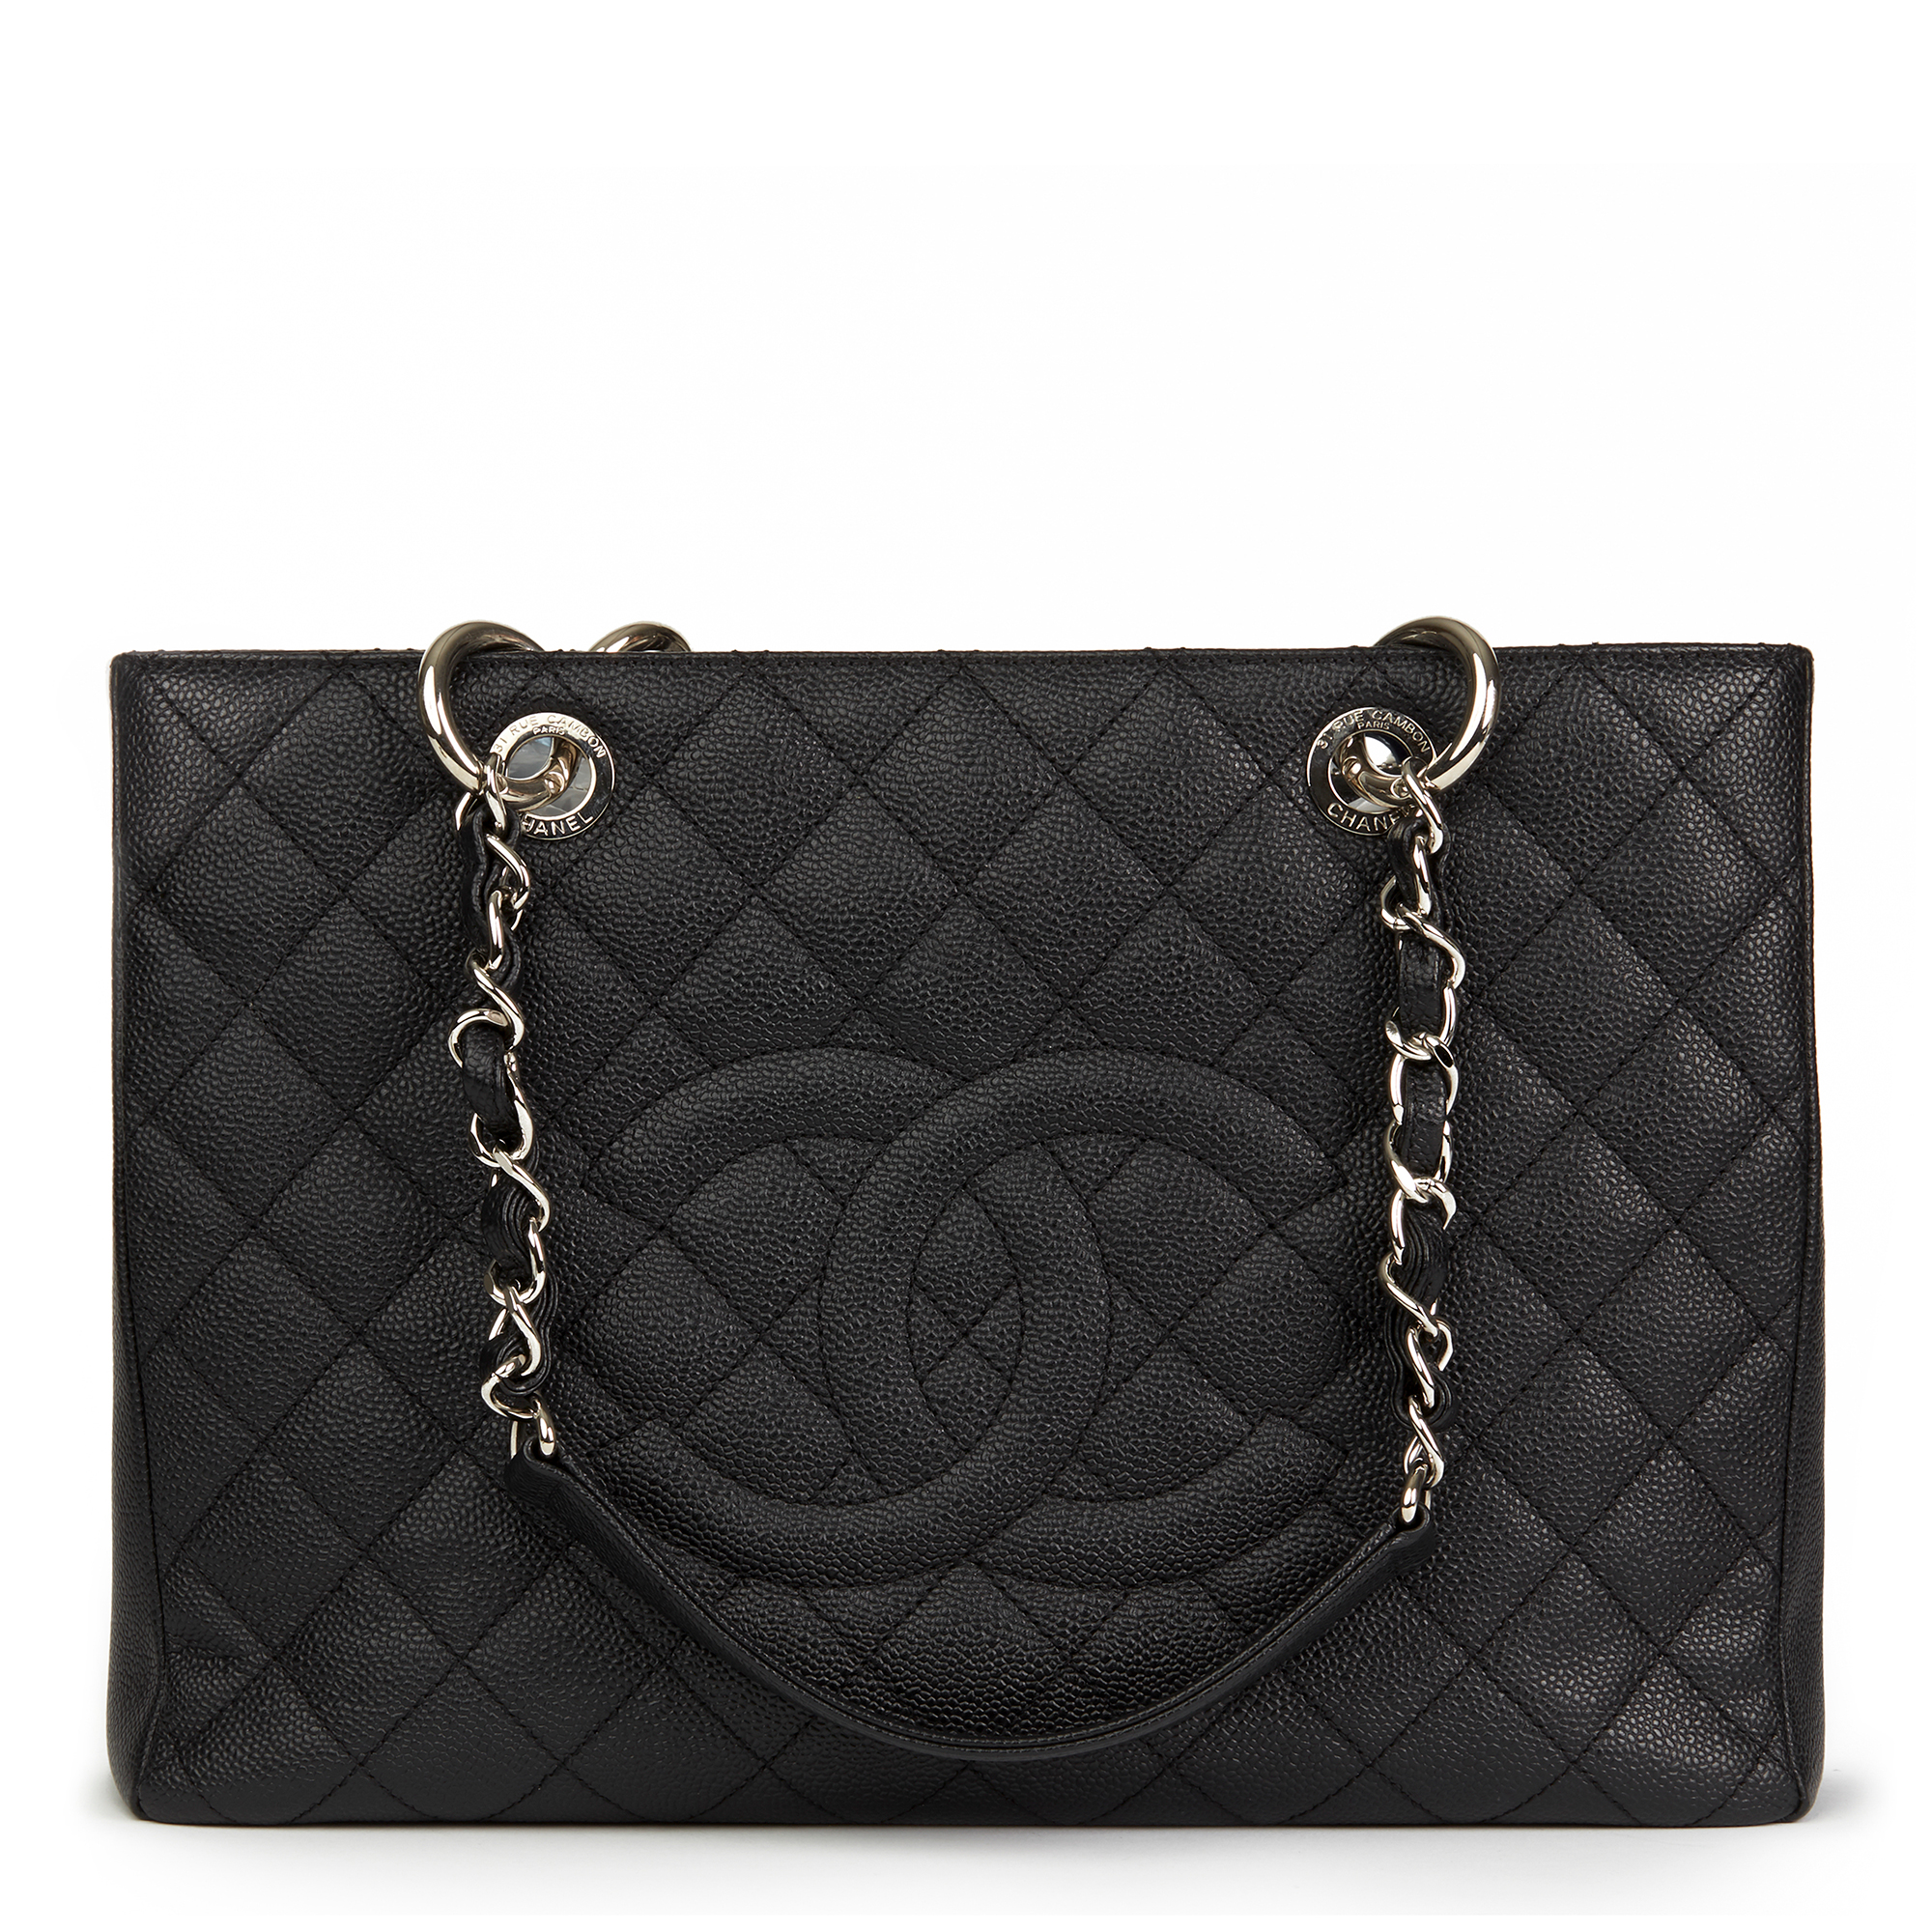 b5bf45a4eb01 CHANEL BLACK QUILTED CAVIAR LEATHER GRAND SHOPPING TOTE GST HB2451 ...